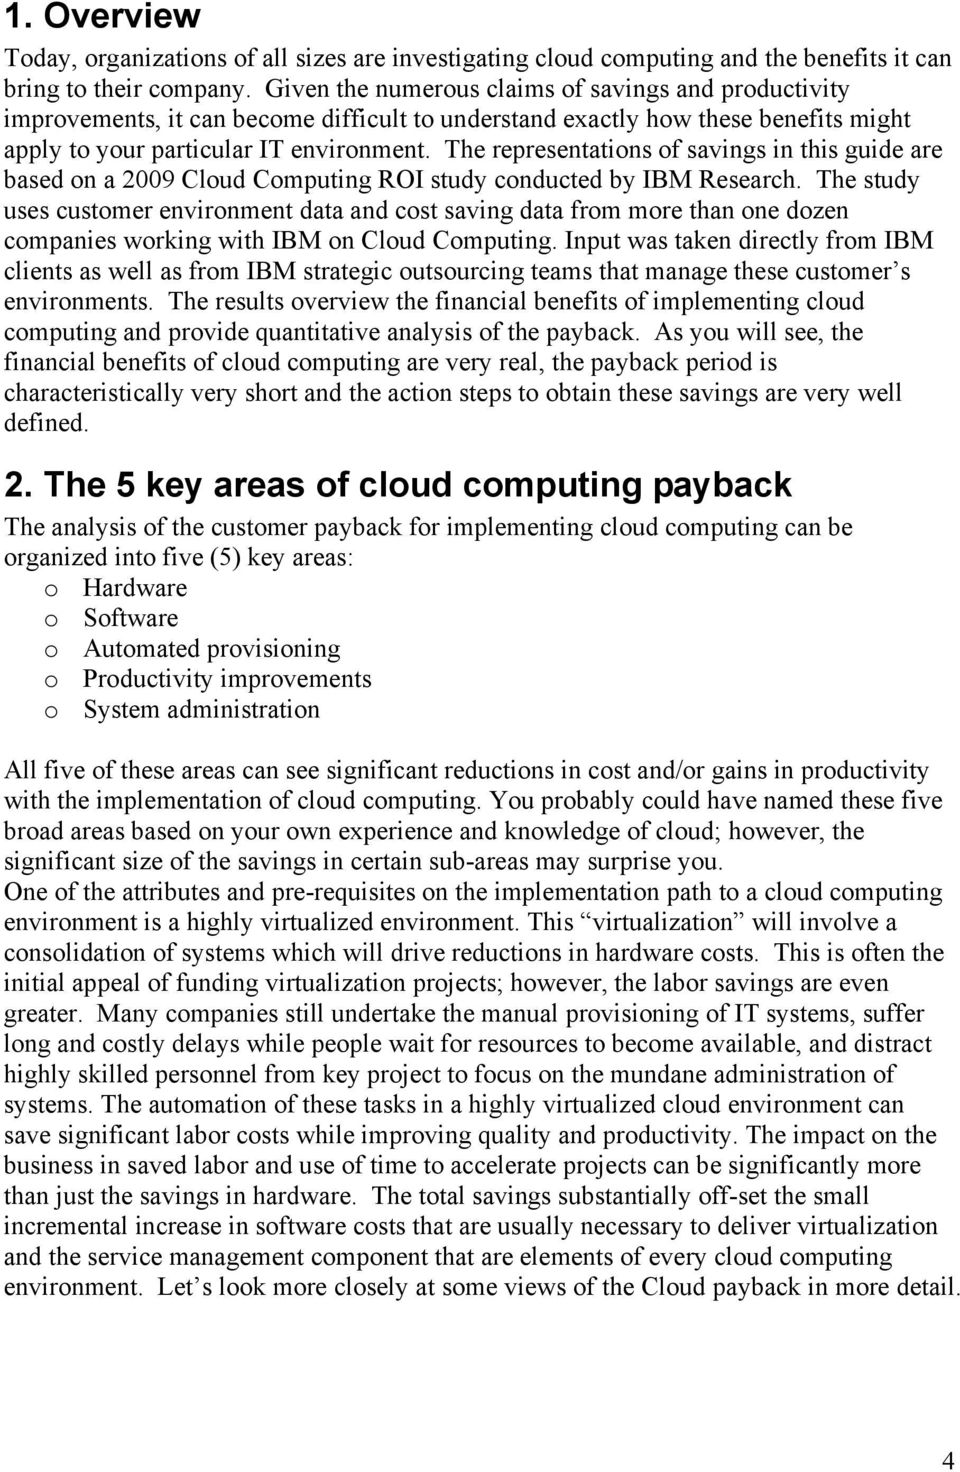 The representations of savings in this guide are based on a 2009 Cloud Computing ROI study conducted by IBM Research.